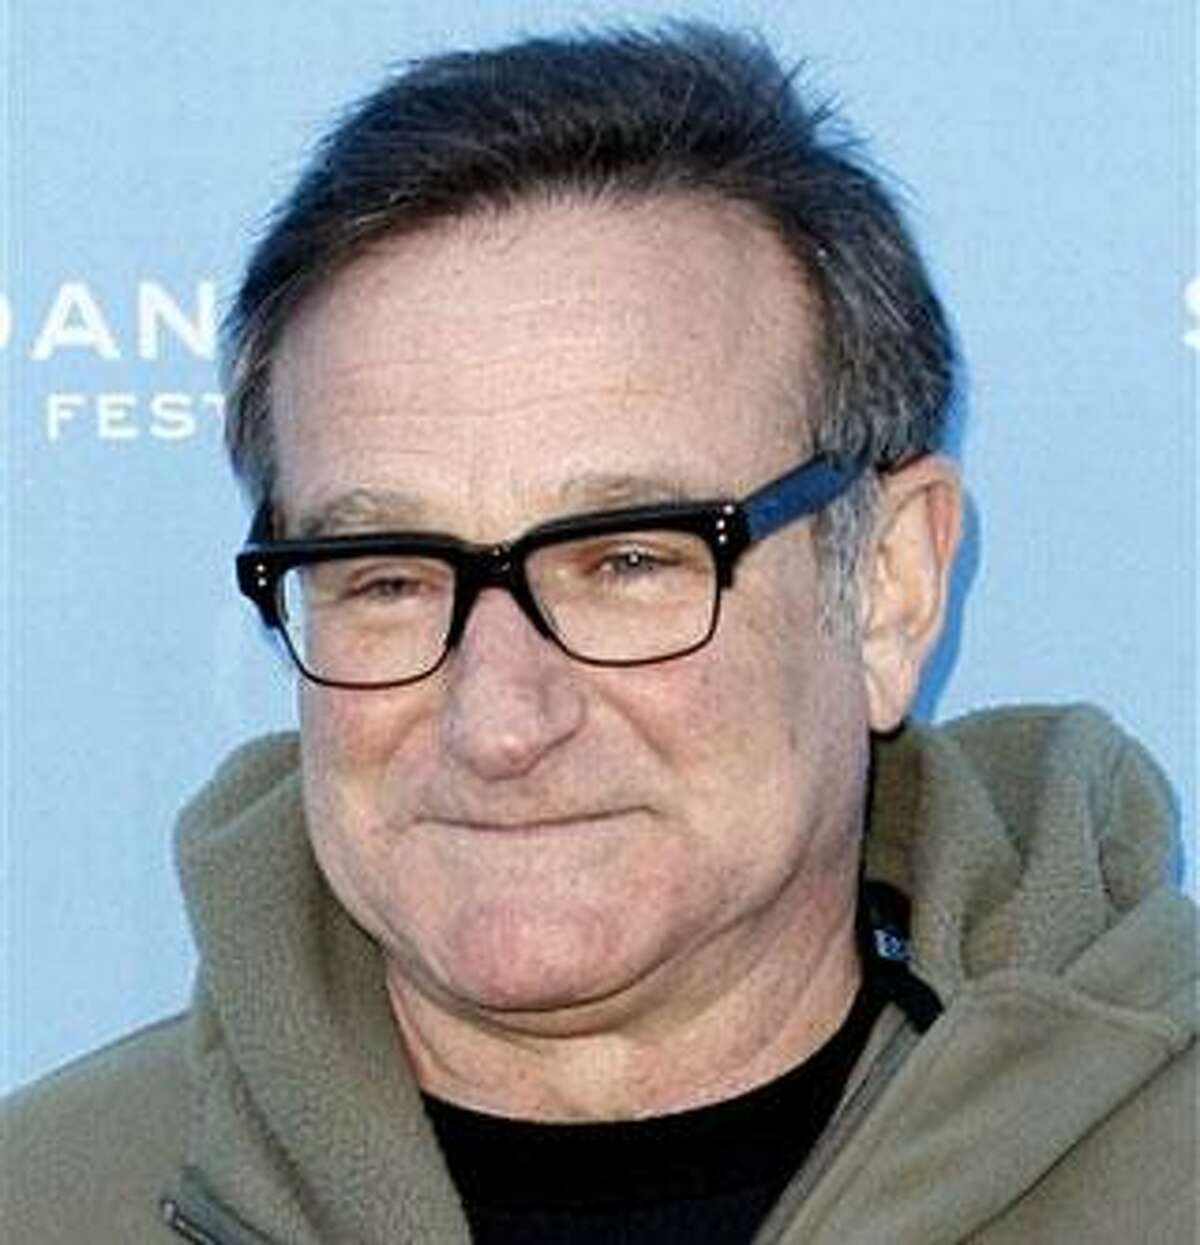 """In this Jan. 18, 2009 file photo, Robin Williams arrives at the premiere of """"World's Greatest Dad"""" at the Sundance Film Festival in Park City, Utah. (AP Photo/Matt Sayles, File)"""